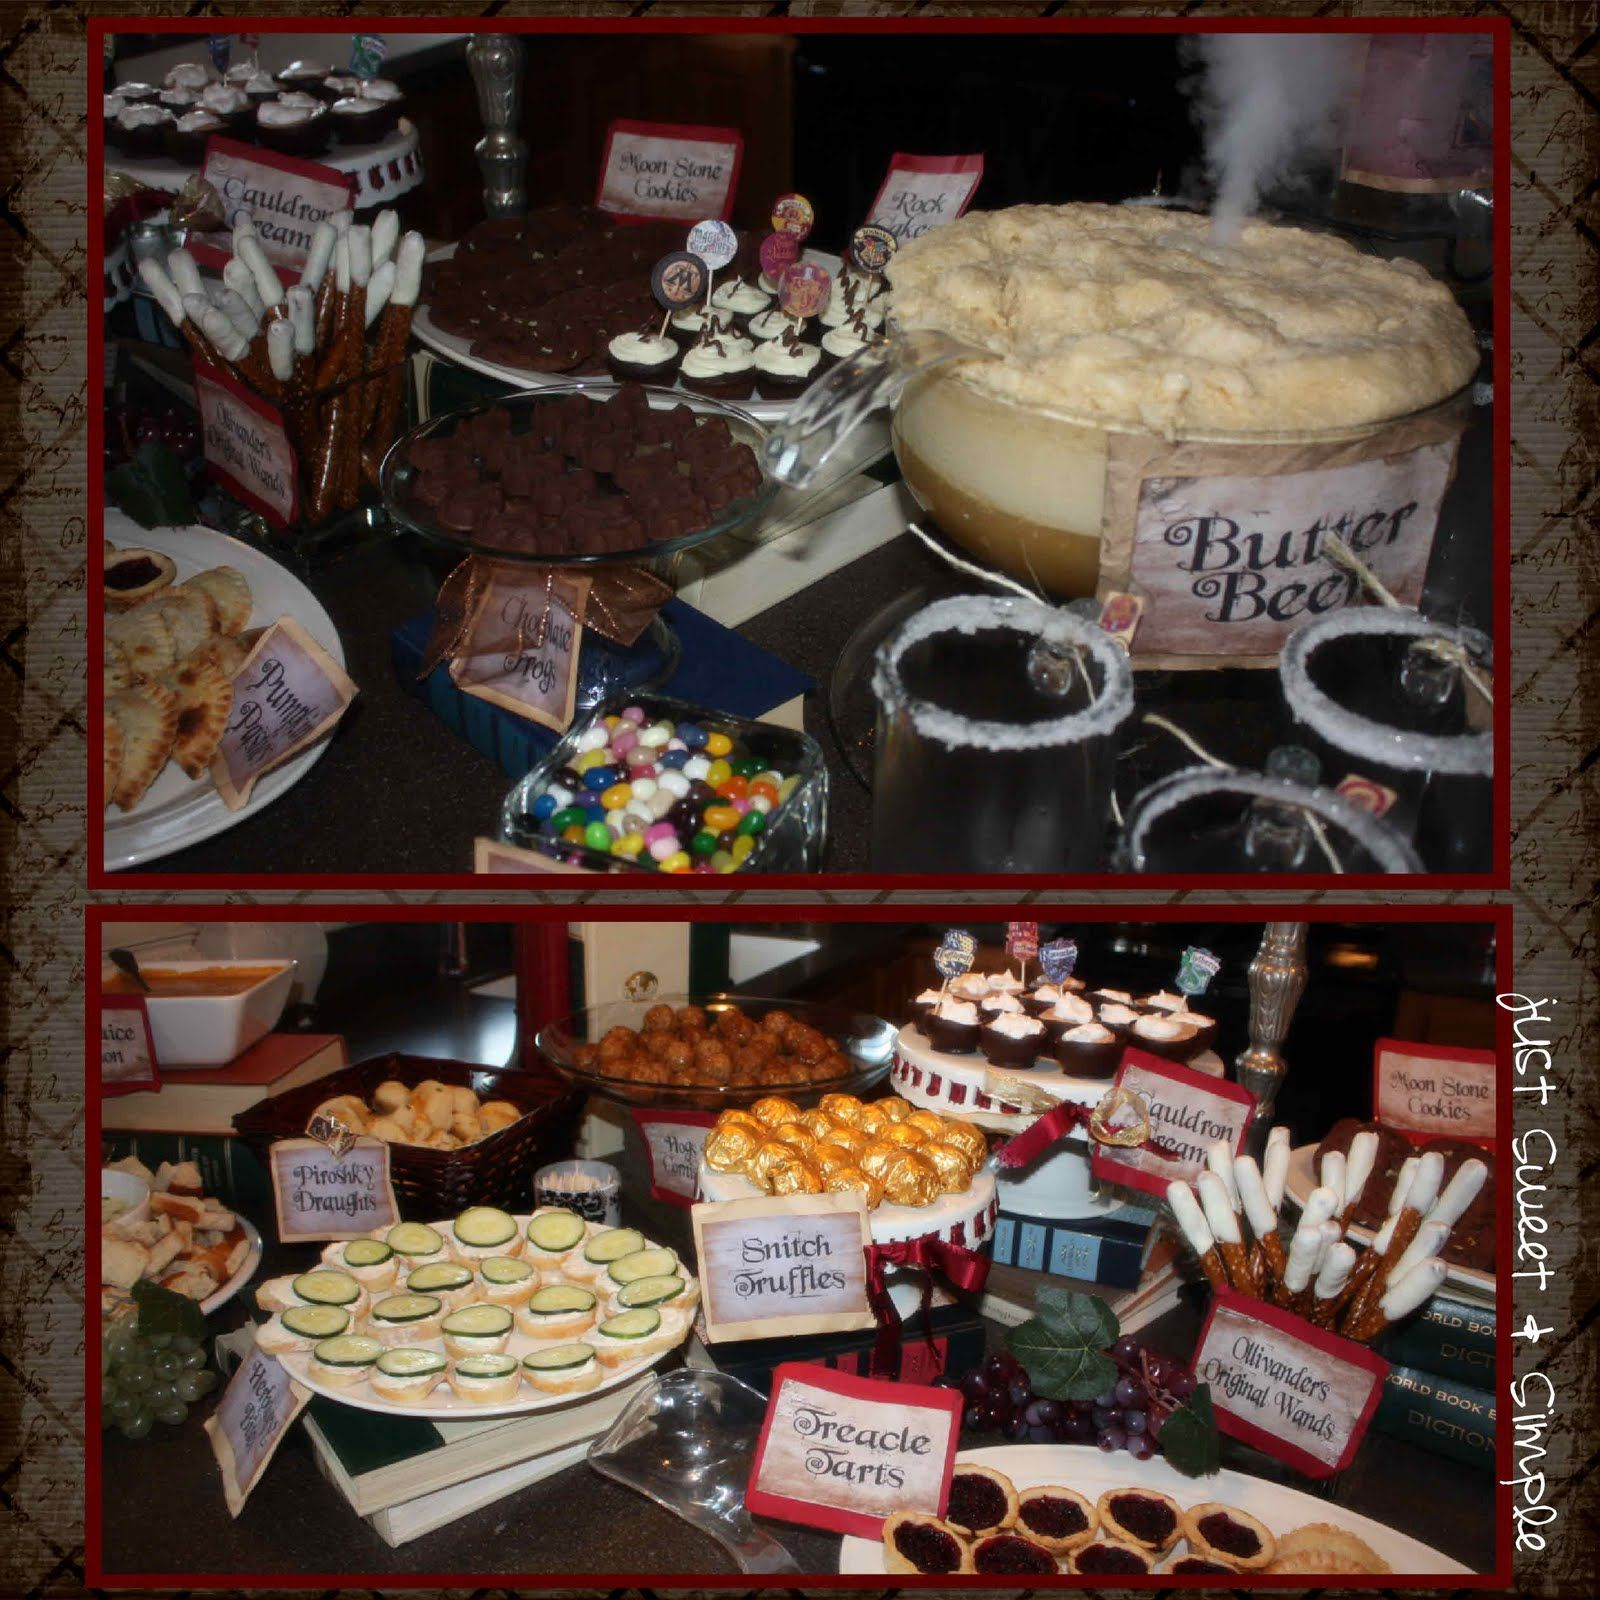 Harry potter food ideas harry potter party party and gift ideas harry potter food ideas harry potter party forumfinder Images